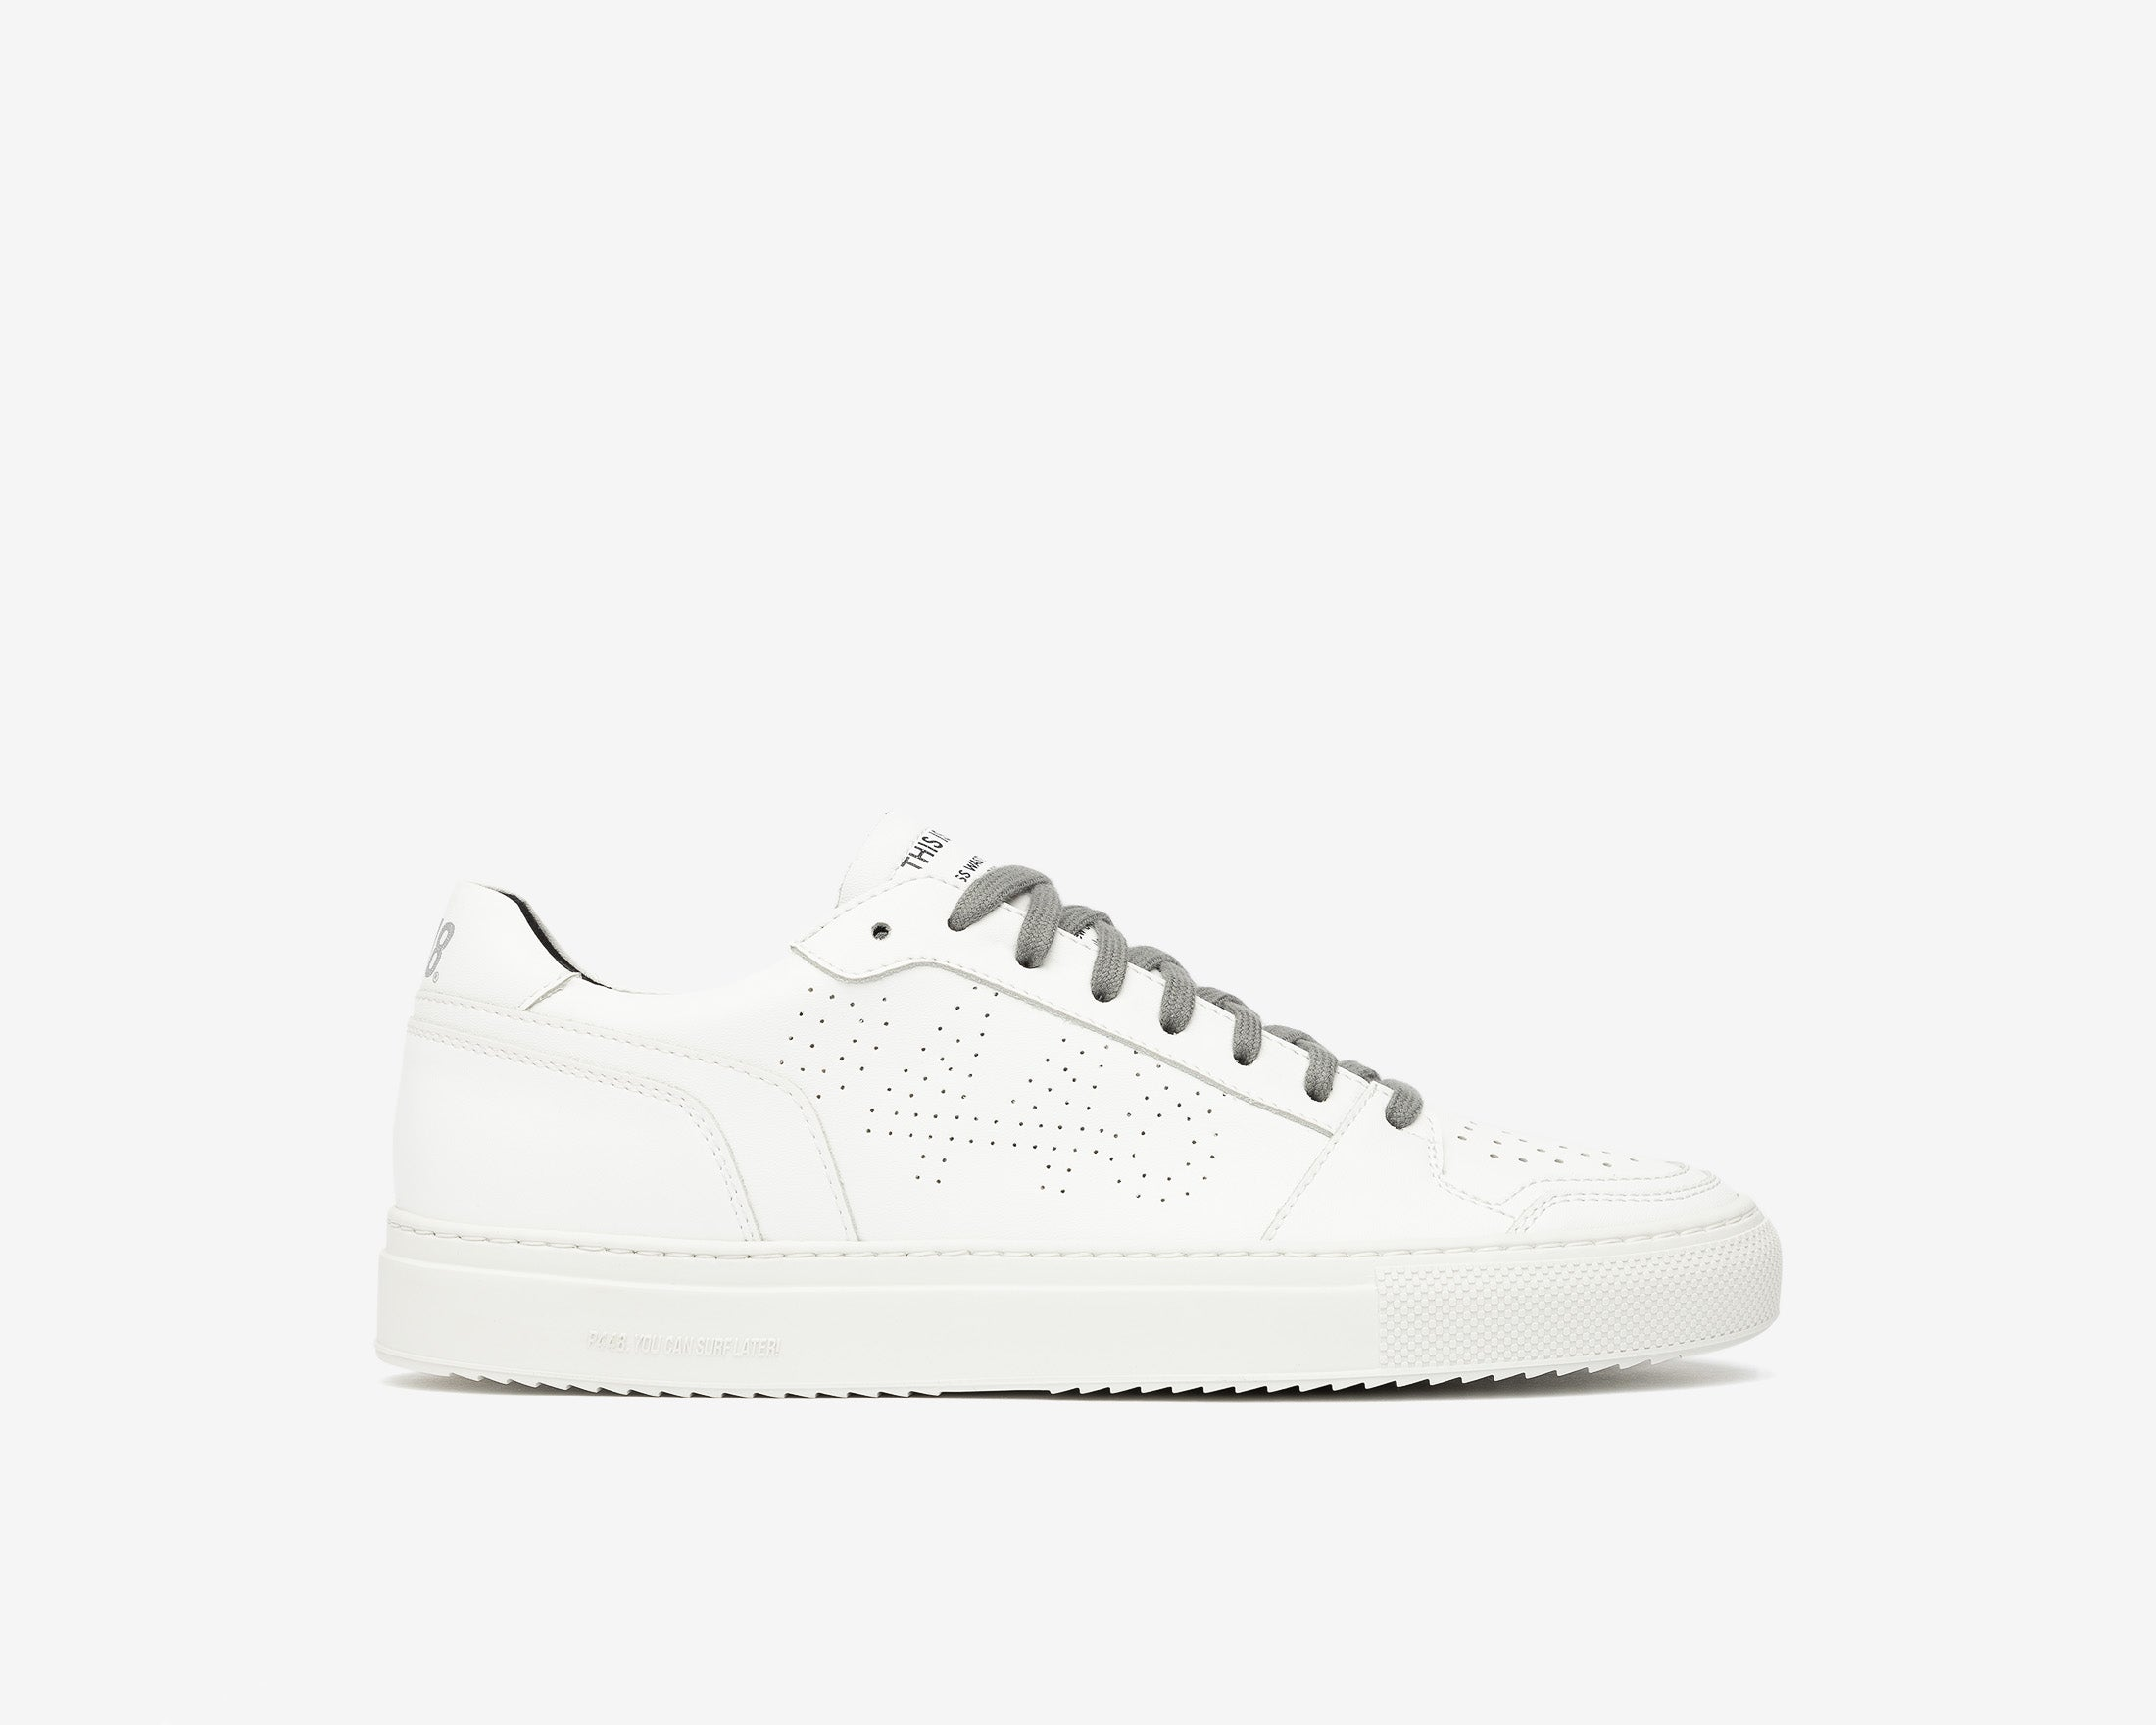 Zac Low-Top Sneaker in WhiteR Recycled Leather - Profile